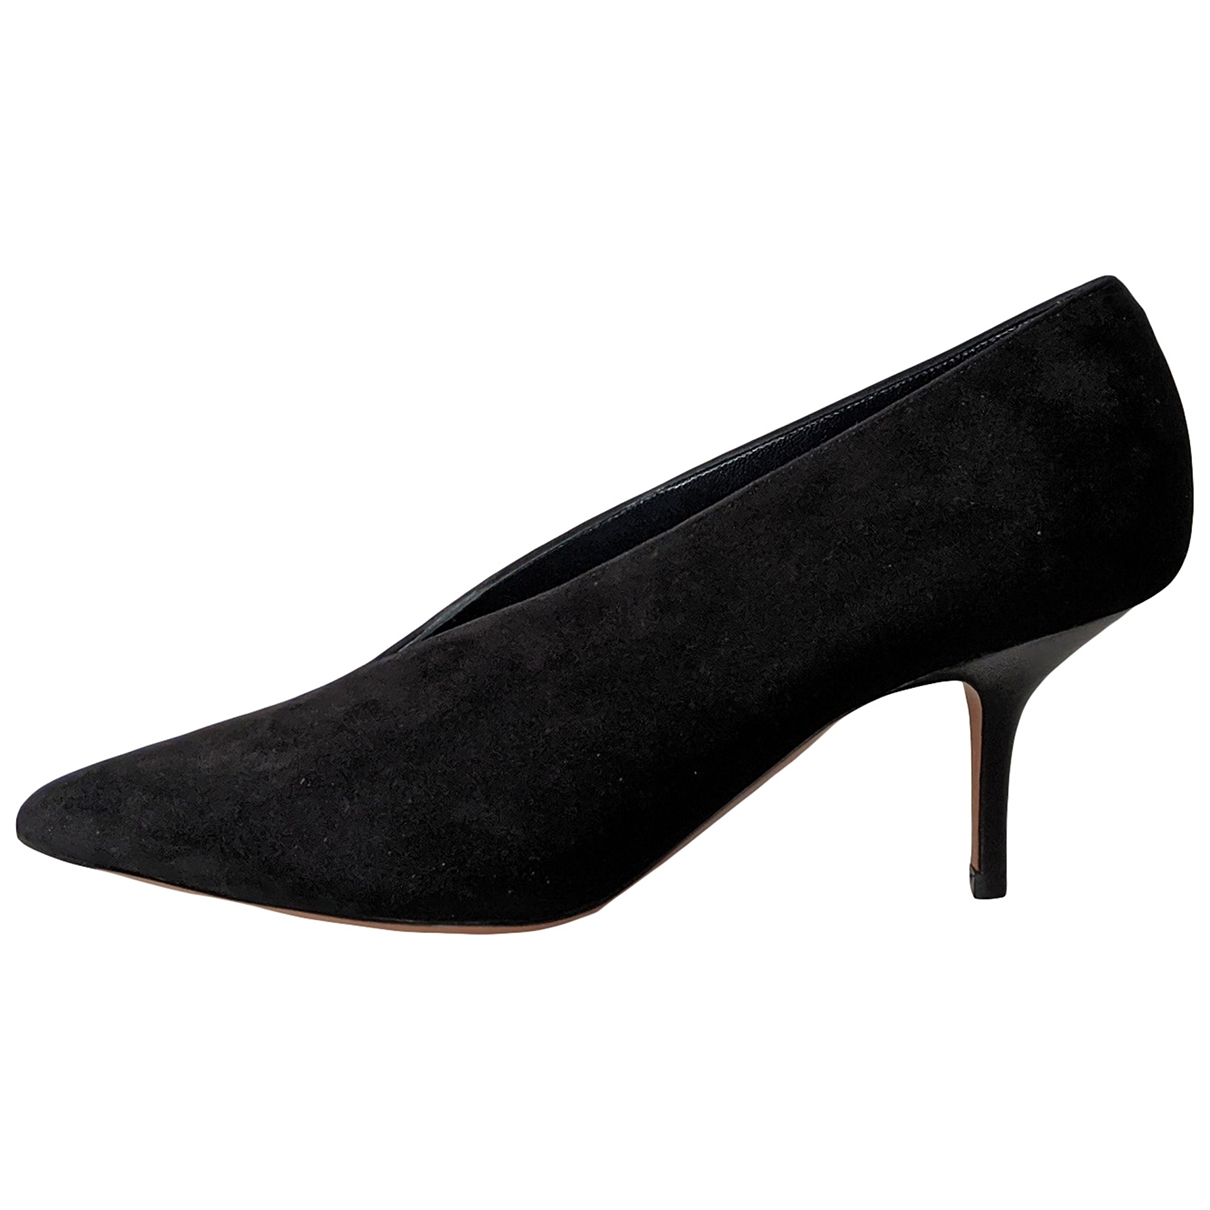 Celine Soft V Neck Black Suede Heels for Women 38 EU